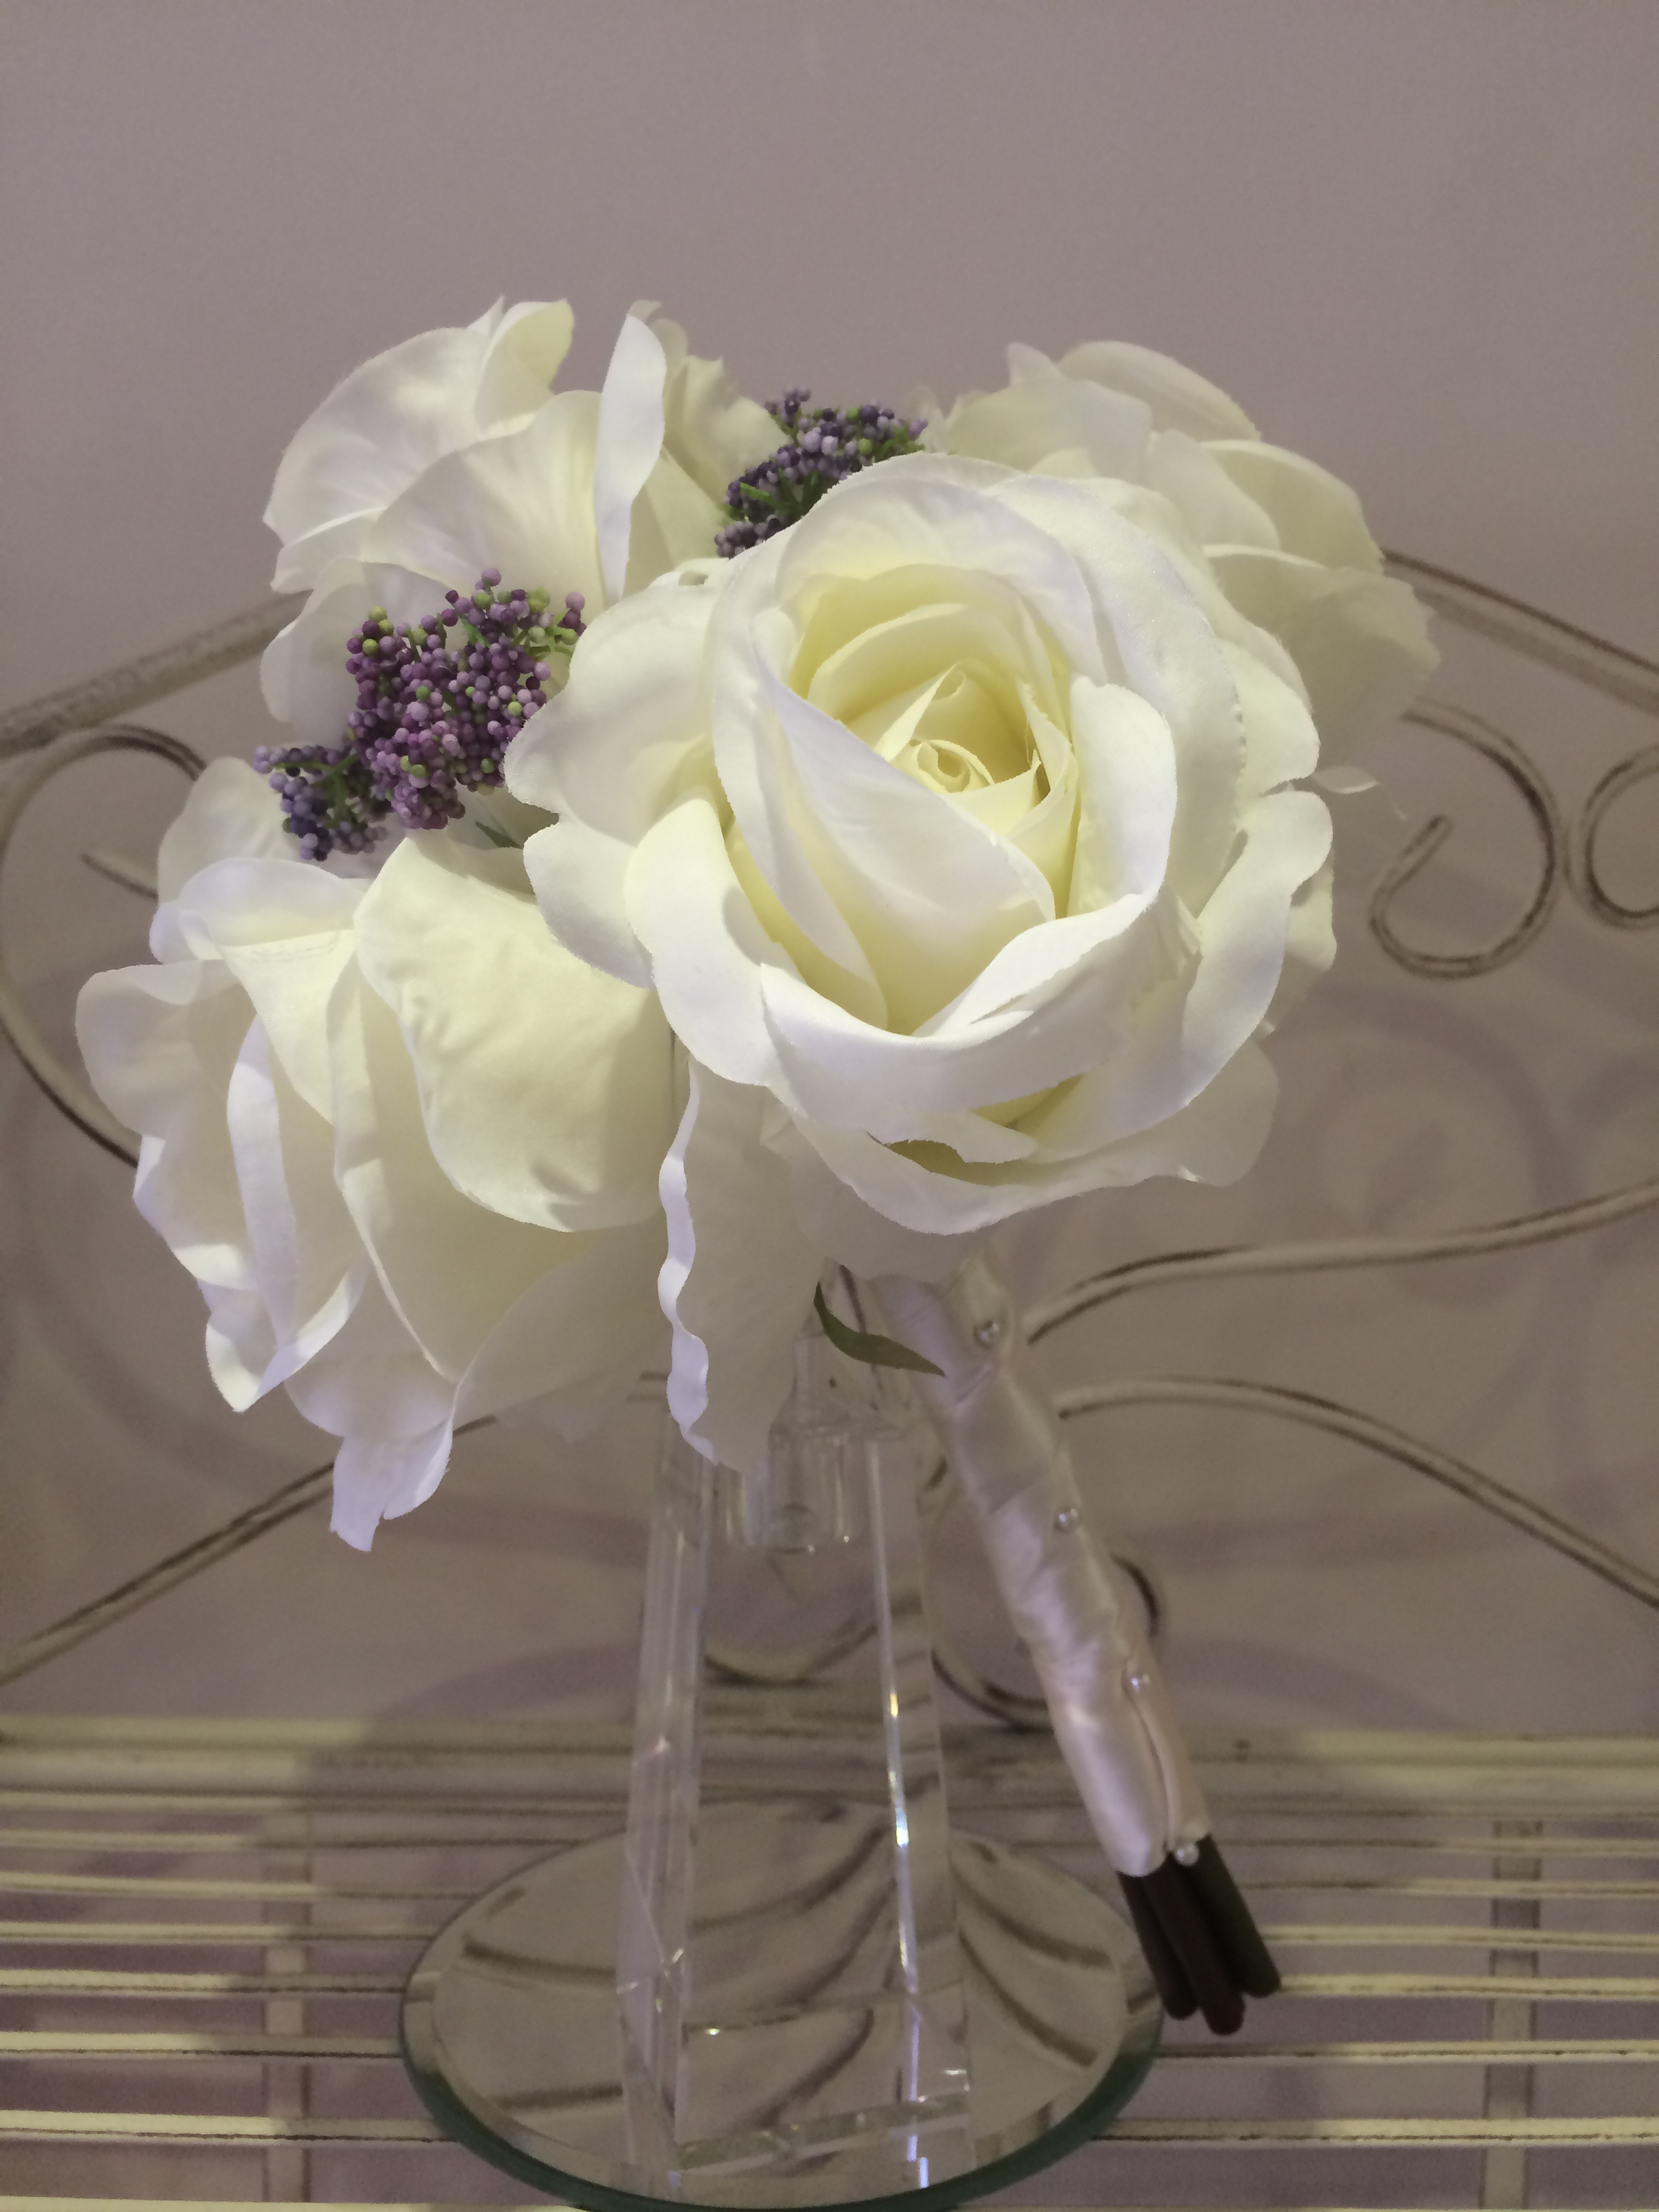 Bridesmaids Bouquet With Large Cream Roses &       Lilac Hedgerow Berries